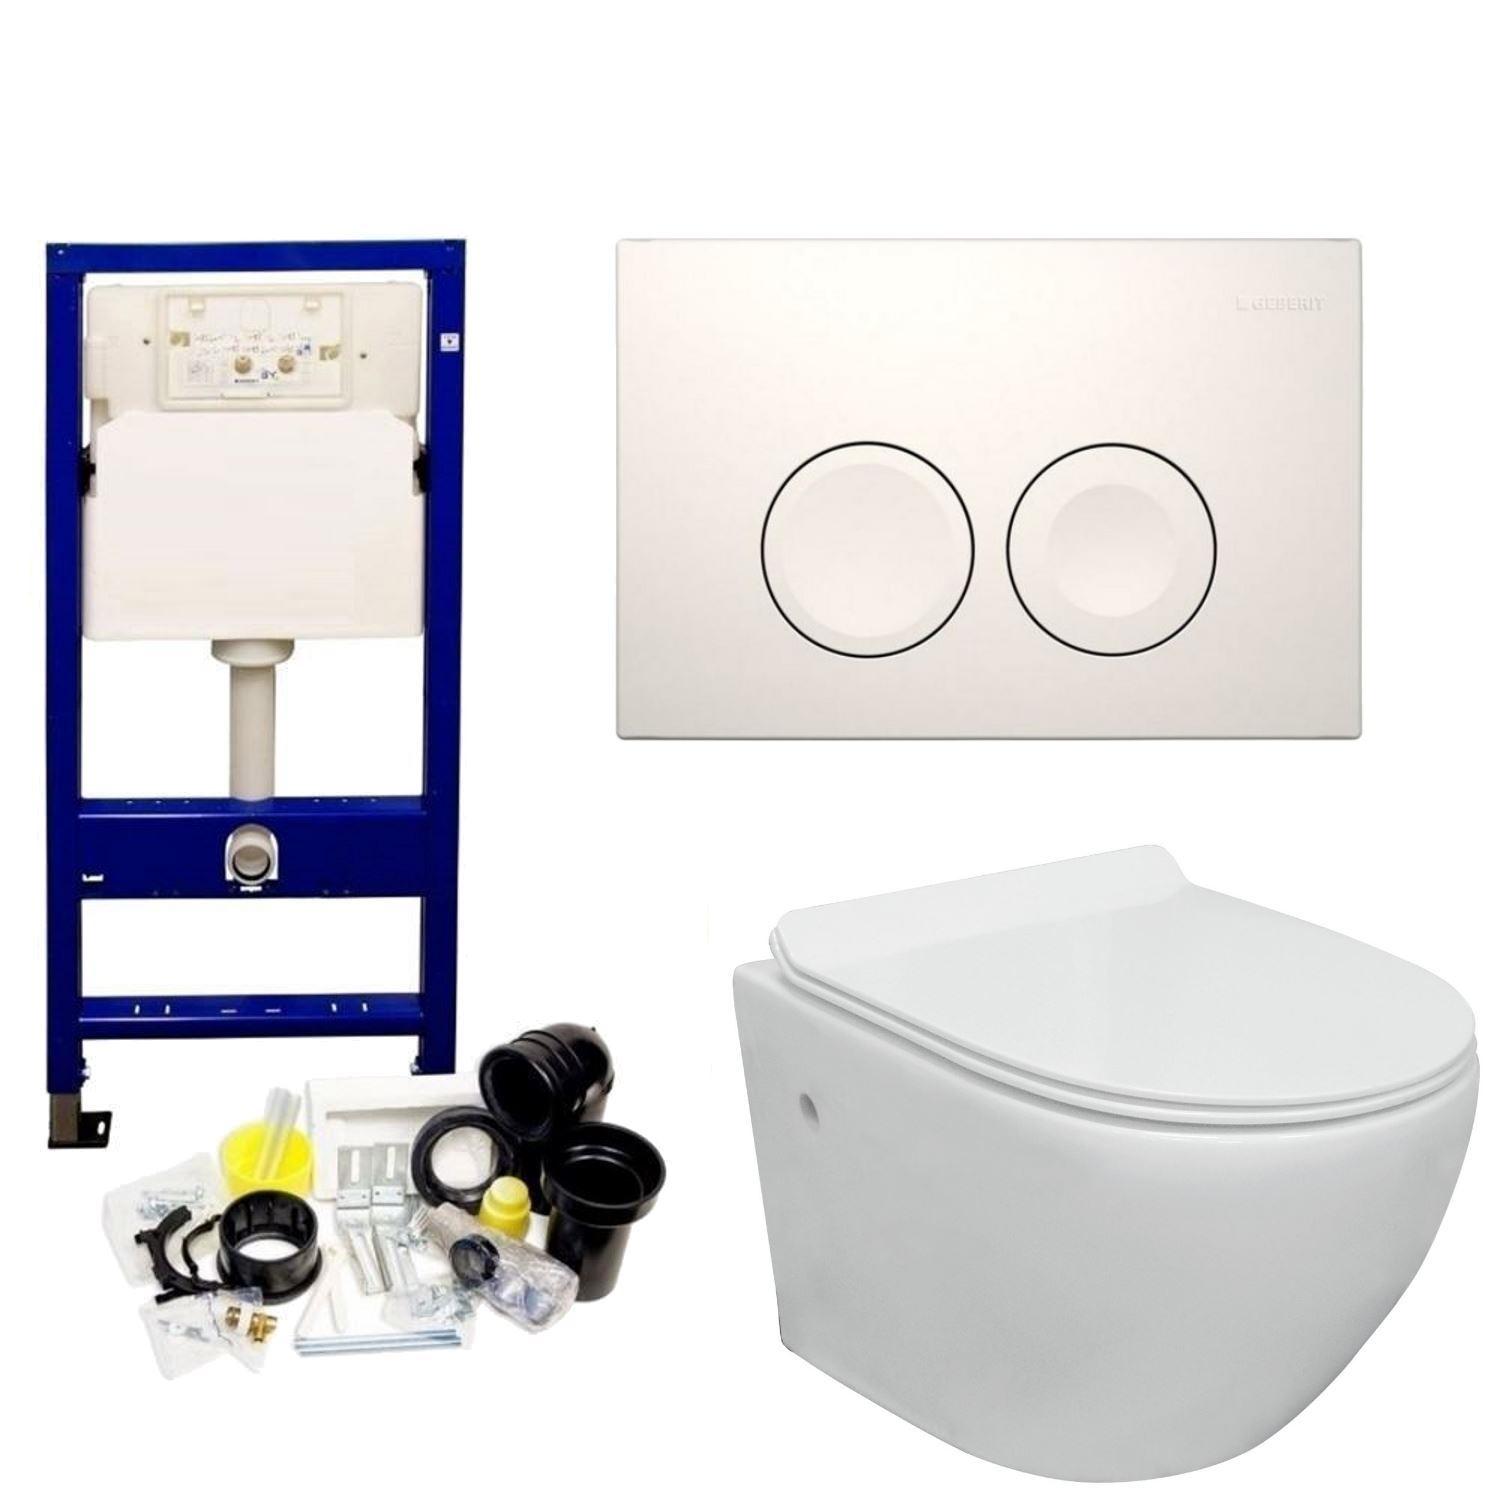 Geberit UP100 Toiletset set29 VM Go Aquaflow Randloos met Delta drukplaat Toilet Toiletset